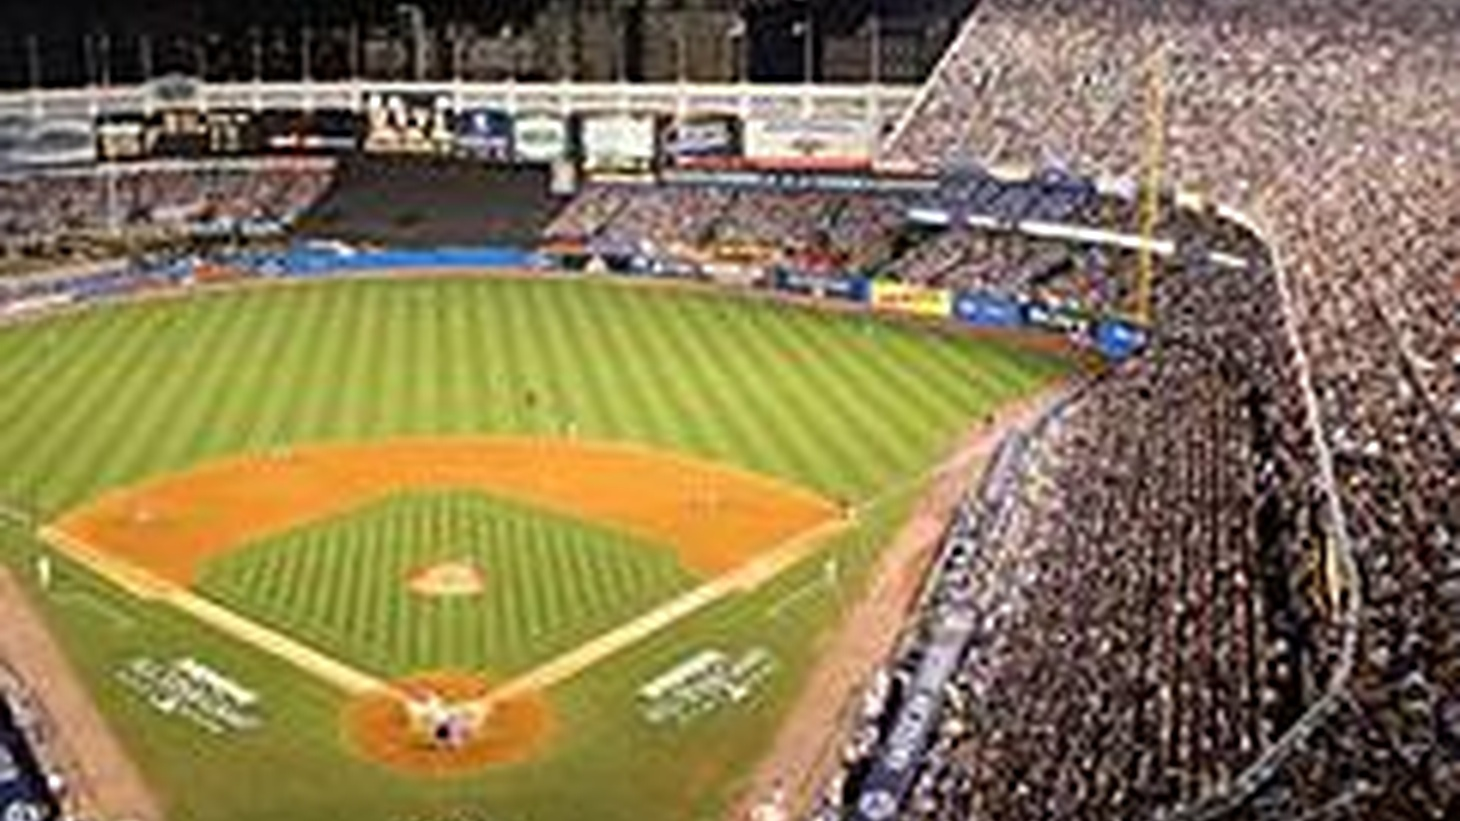 One of sport's hallowed temples, one of America's cultural cathedrals, showcased gloriously at this week's All-Star classic, is closing down at the end of the season. I'm not a die-hard Yankee fan. Not like my friend Arlene who will suffer through every at-bat, every double play, from this time of the season forward, literally unable to leave the house if her Bronx Bombers have a crucial loss. I'm just one of millions who revere the history and the magical moments, Lou Gehrig's farewell and all, of Yankee Stadium. I'm just one of millions who has her own small, personal story of Yankee Stadium to tell...